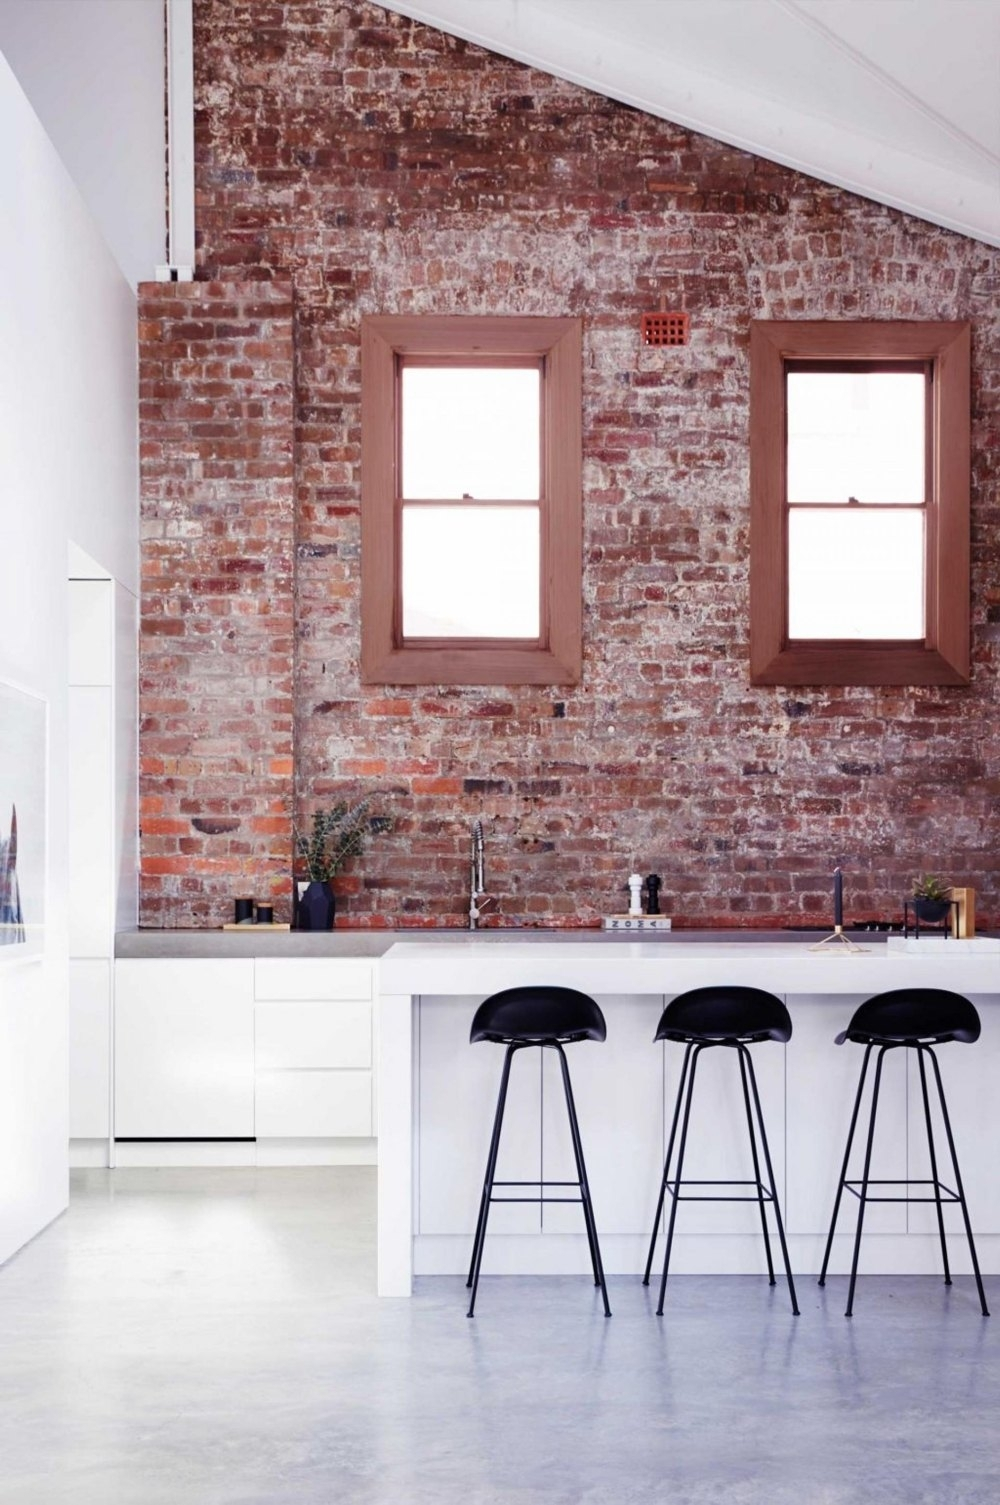 19 Stunning Interior Brick Wall Ideas | Decorate With Exposed For Most Popular Exposed Brick Wall Accents (View 2 of 15)